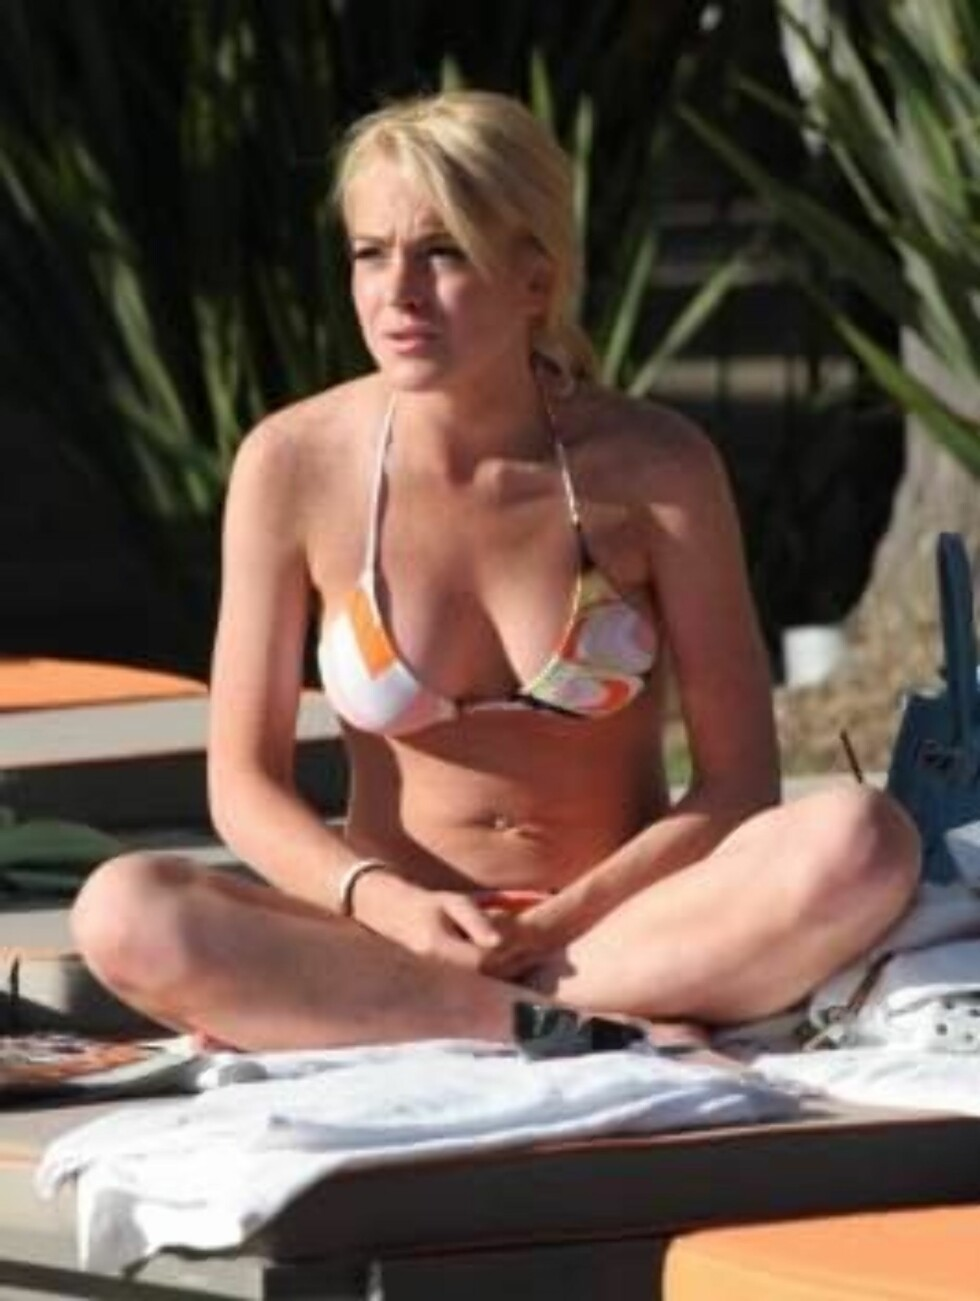 Code: X17XX8 - GSV, Hollywood, USA, 24.06.2005: Teen star Lindsay Lohan sunbathing at a pool in trendy Hollywood reads the celebrity magazines and flirts with a mysterious man. Her Disney movie Herbie, fully loaded is coming out this week end. All Over P Foto: All Over Press